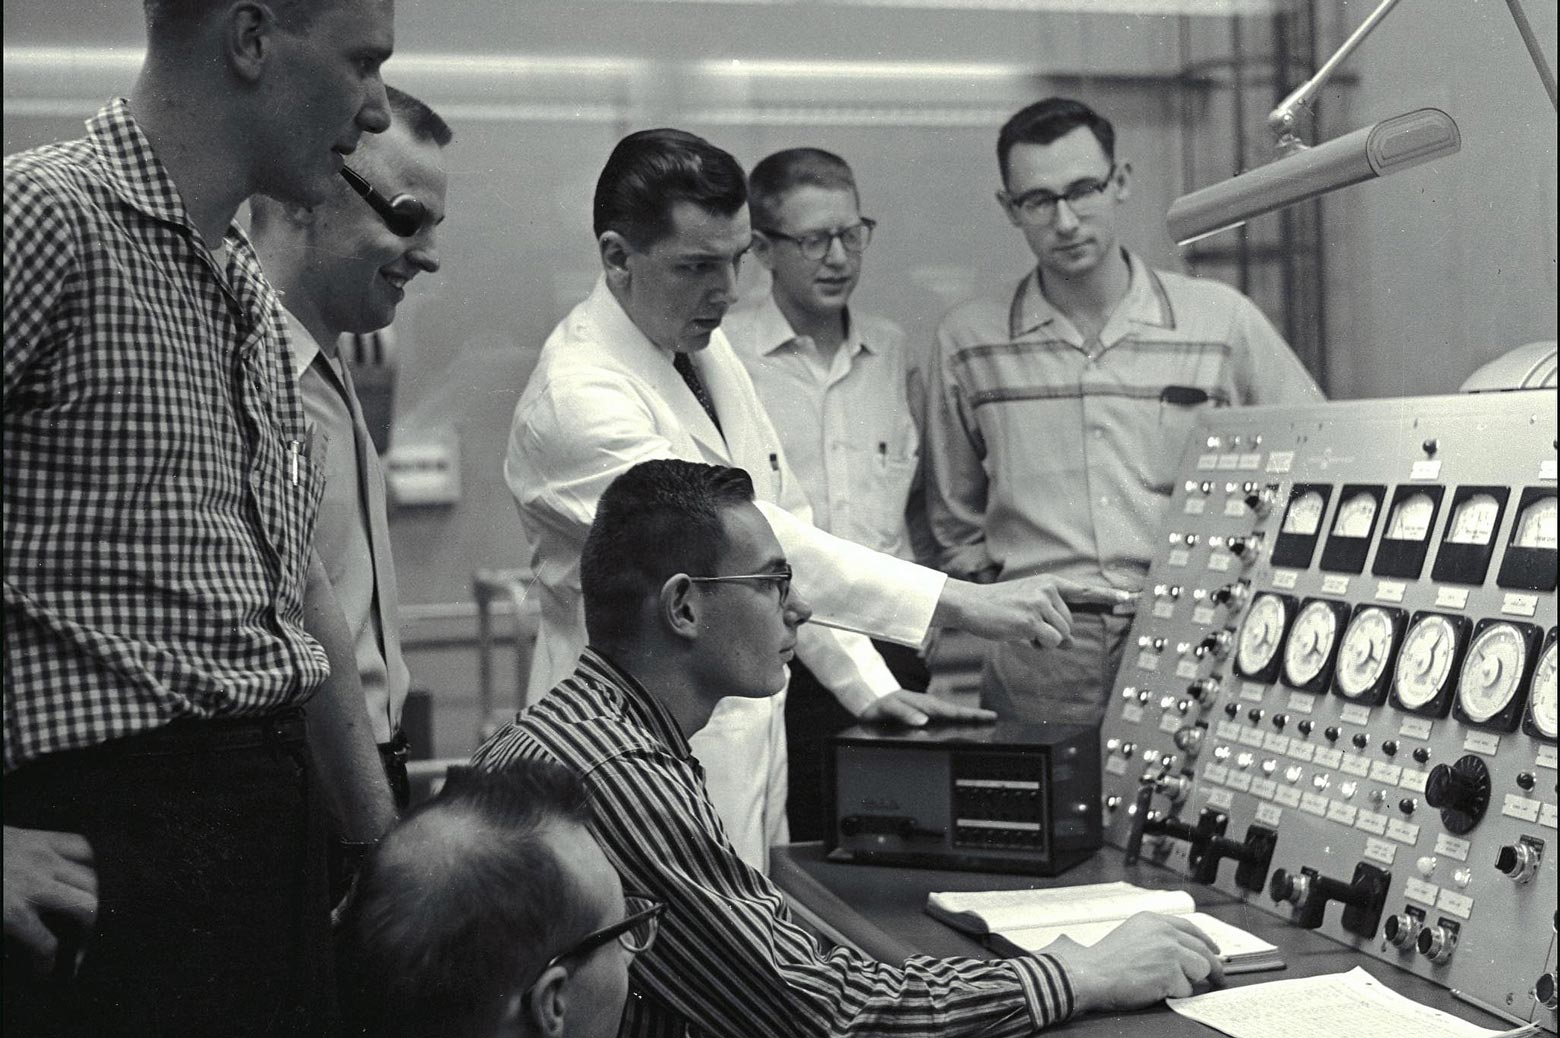 Scientists surround a control panel in 1948